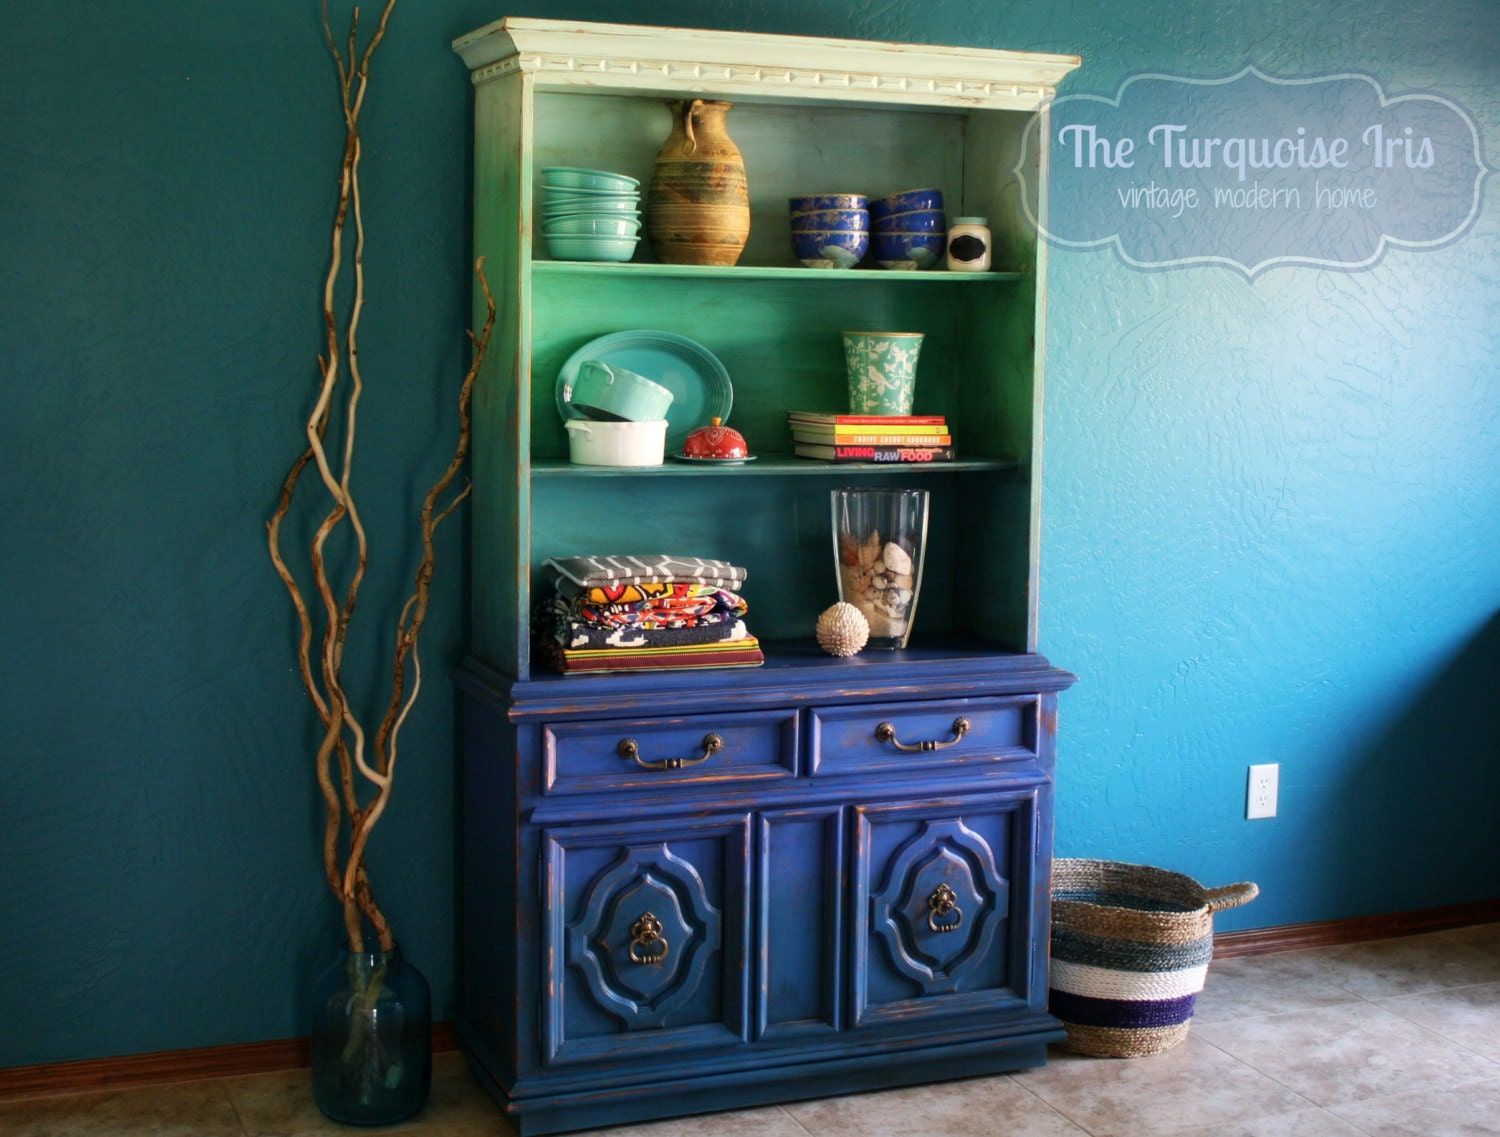 Ombre' Hutch / Bookshelf In Shades Of Turquoise And Blue